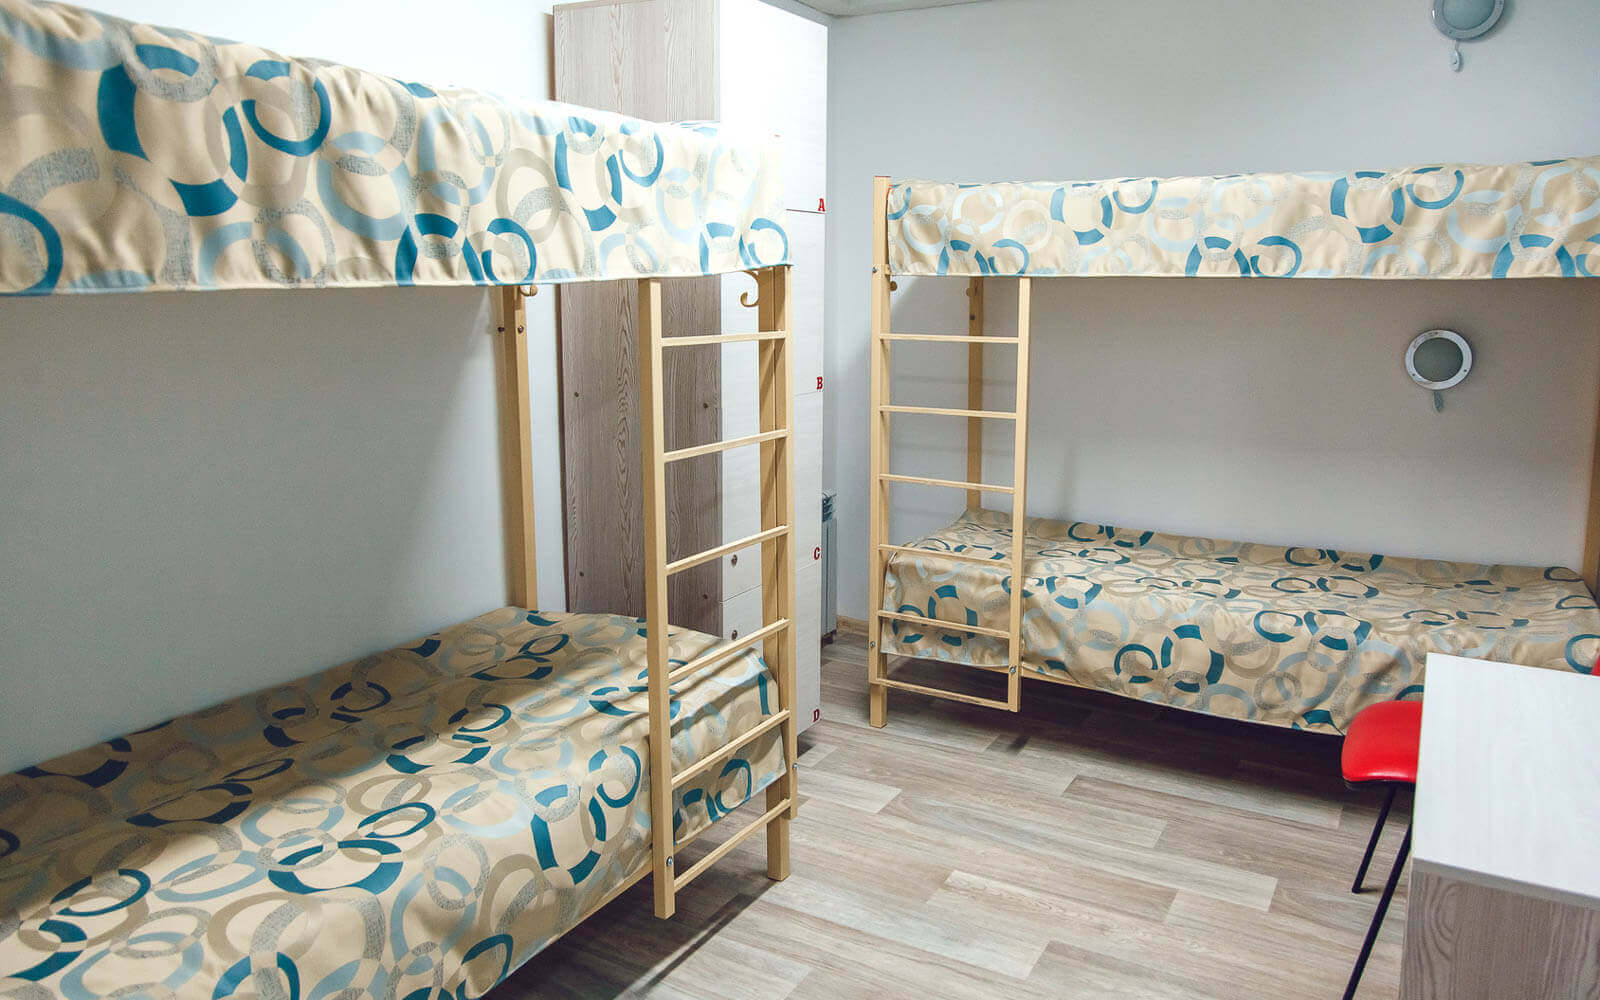 clean hostel beds in barcelona spain